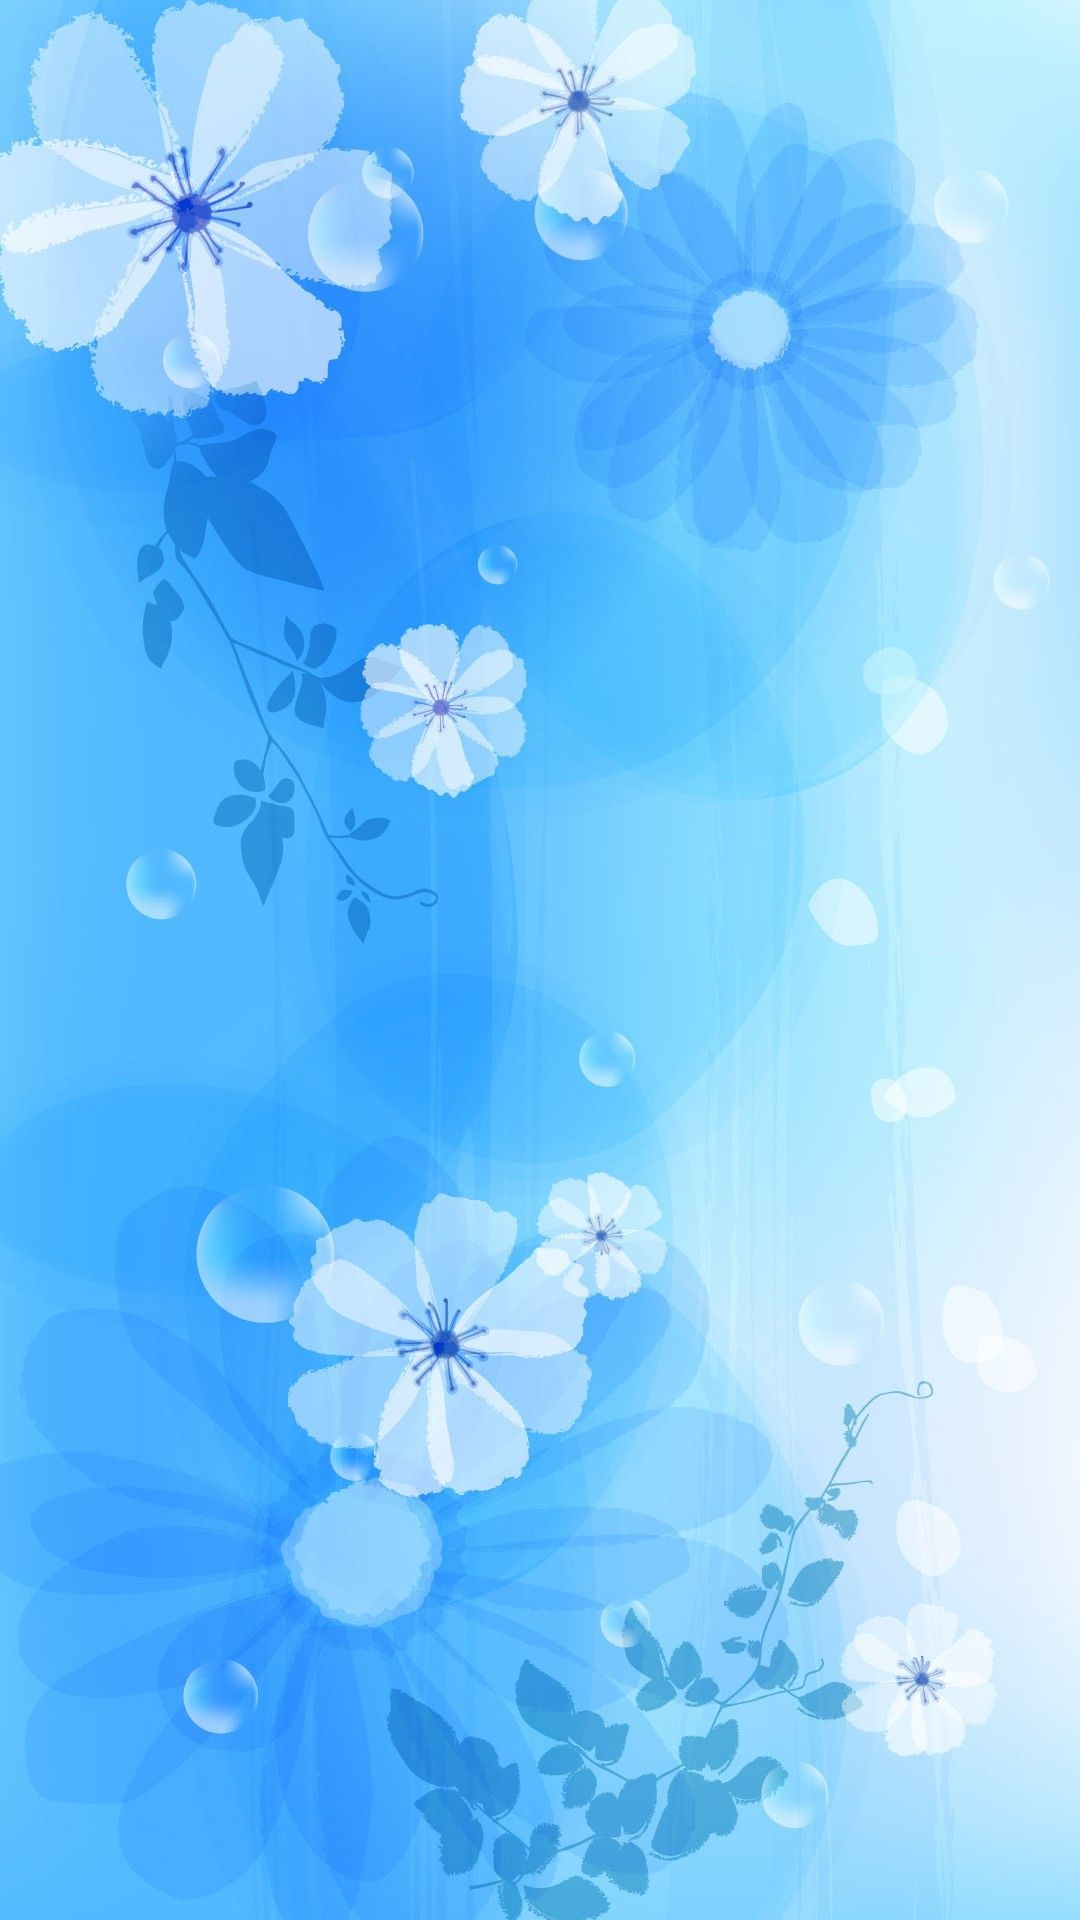 Girly Blue Iphone Wallpaper Best Iphone Wallpaper Best Iphone Wallpapers Iphone Wallpaper Blue Wallpapers